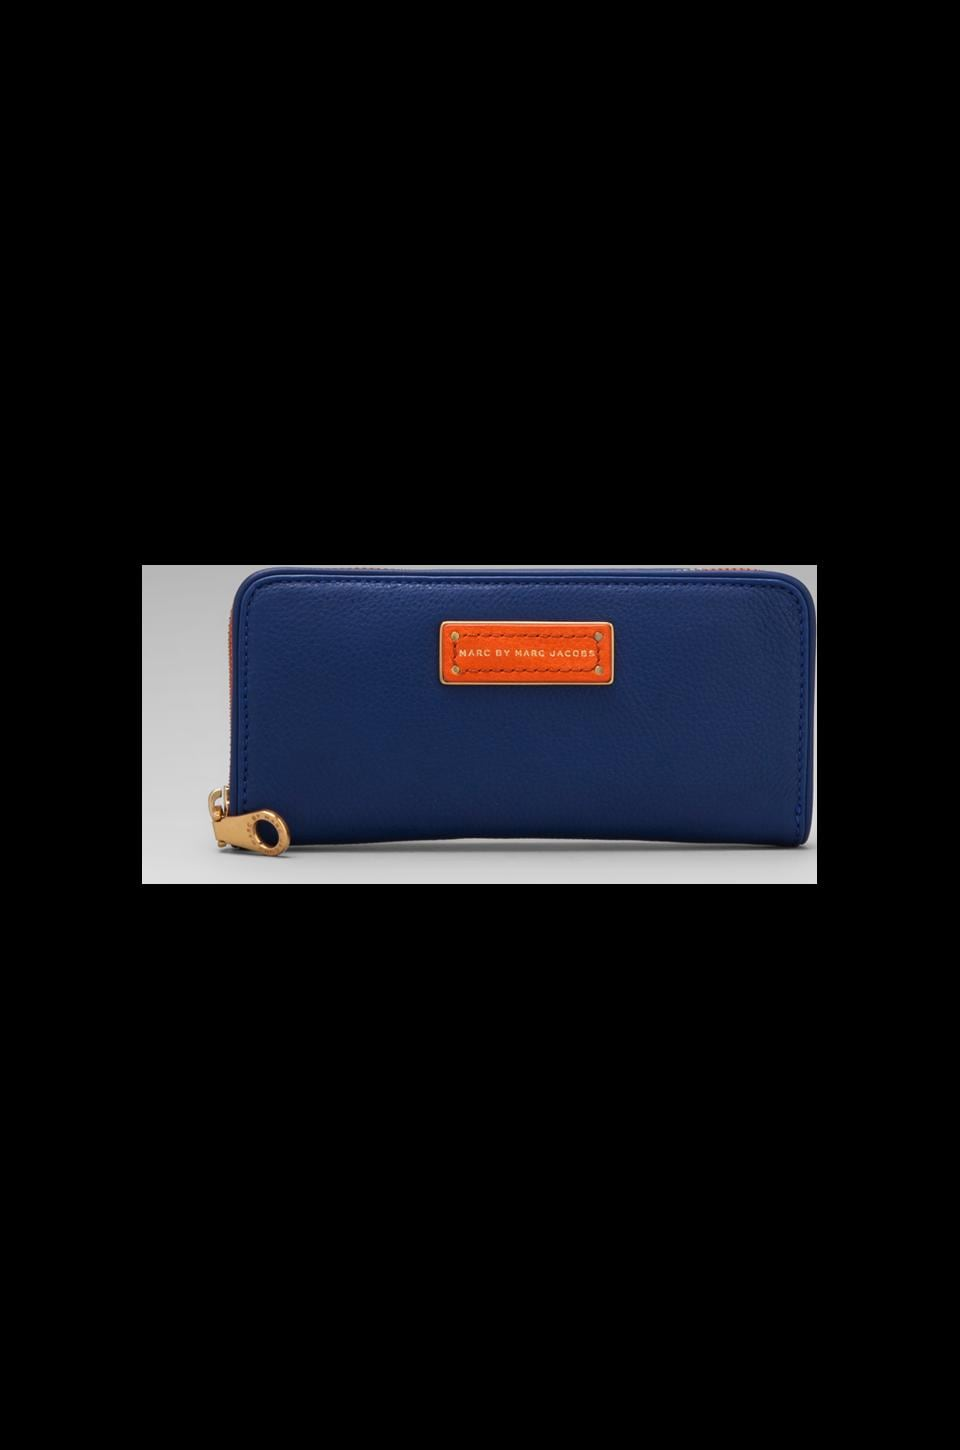 Marc by Marc Jacobs Too Hot to Handle Colorblocked Slim Zip Around Wallet in Bauhaus Blue Multi